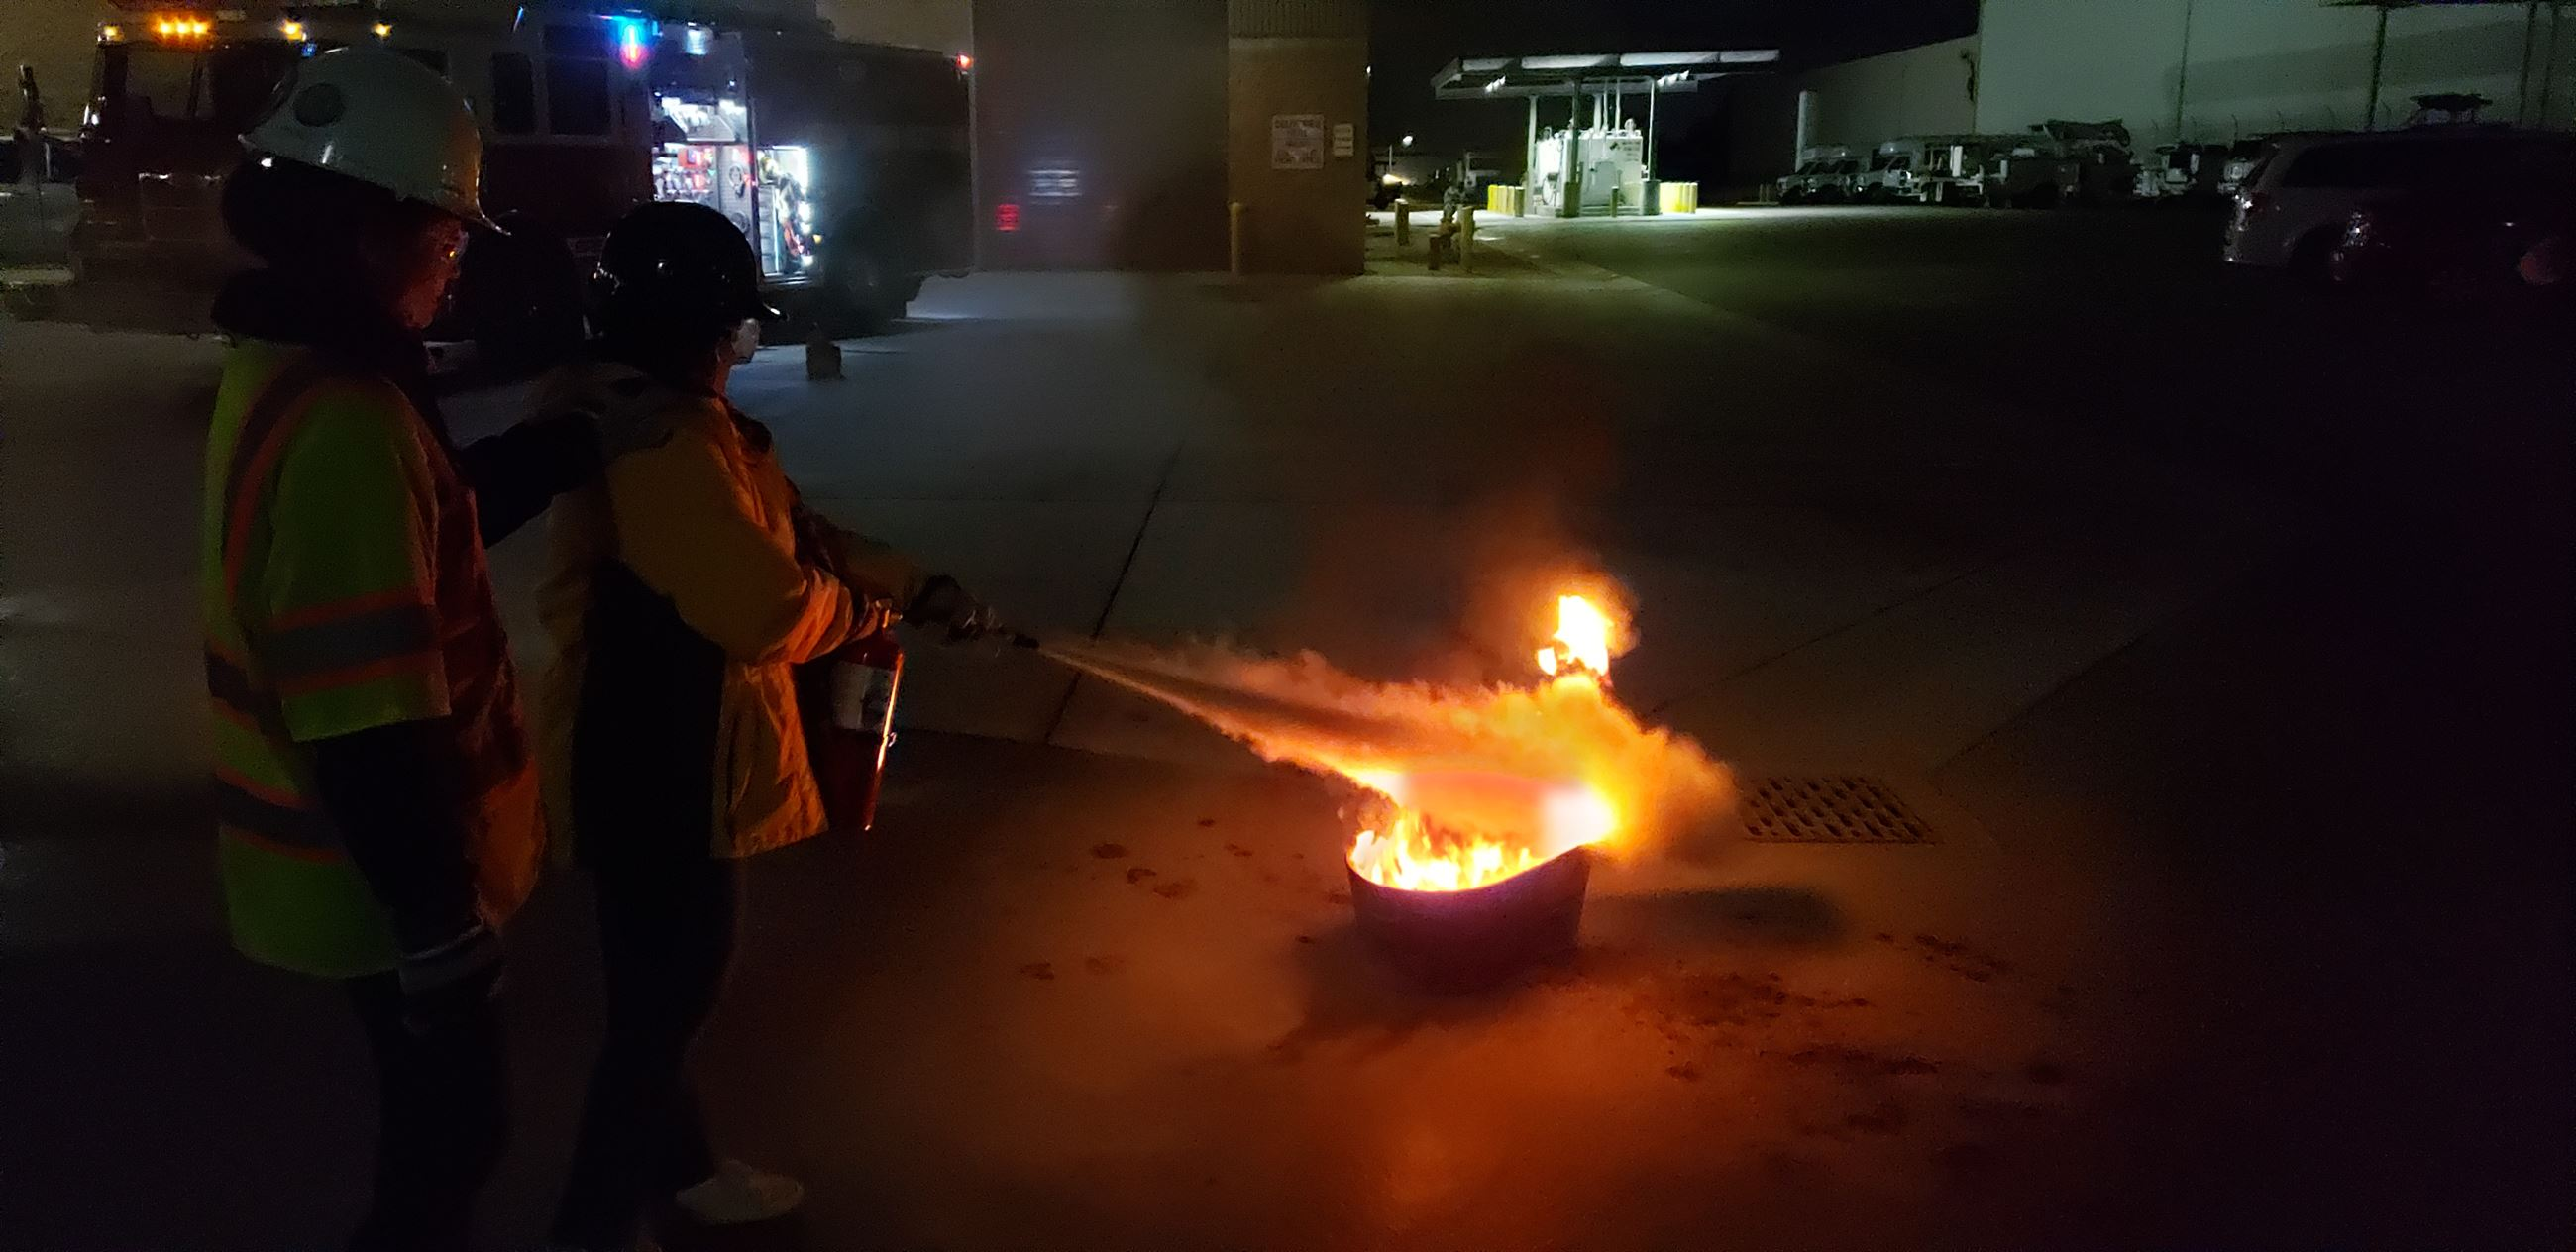 Two CERT members putting out a fire with a fire extinguisher